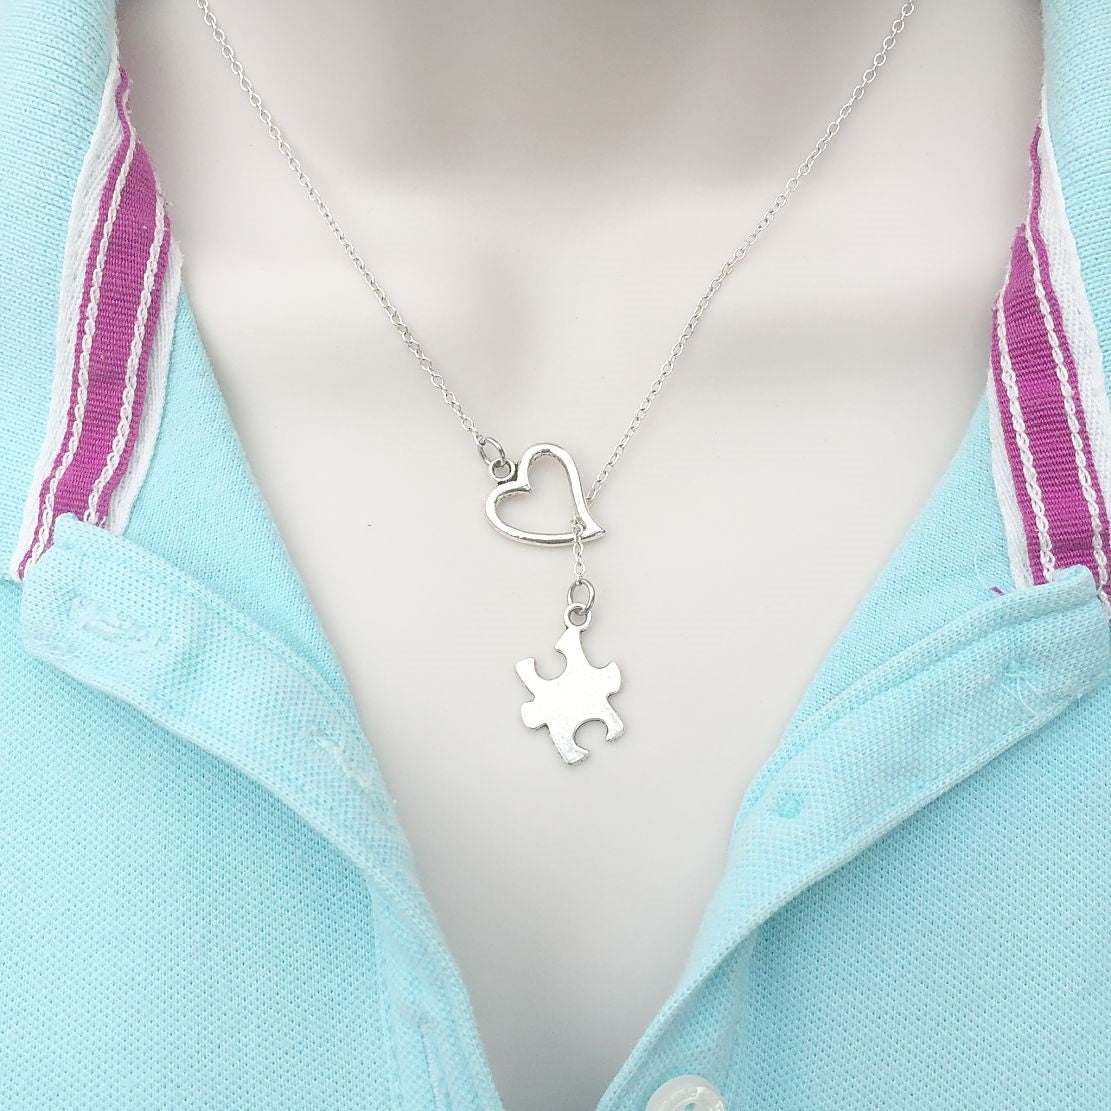 Autism Awareness Silver Puzzle Solid Piece Lariat Y Necklace.